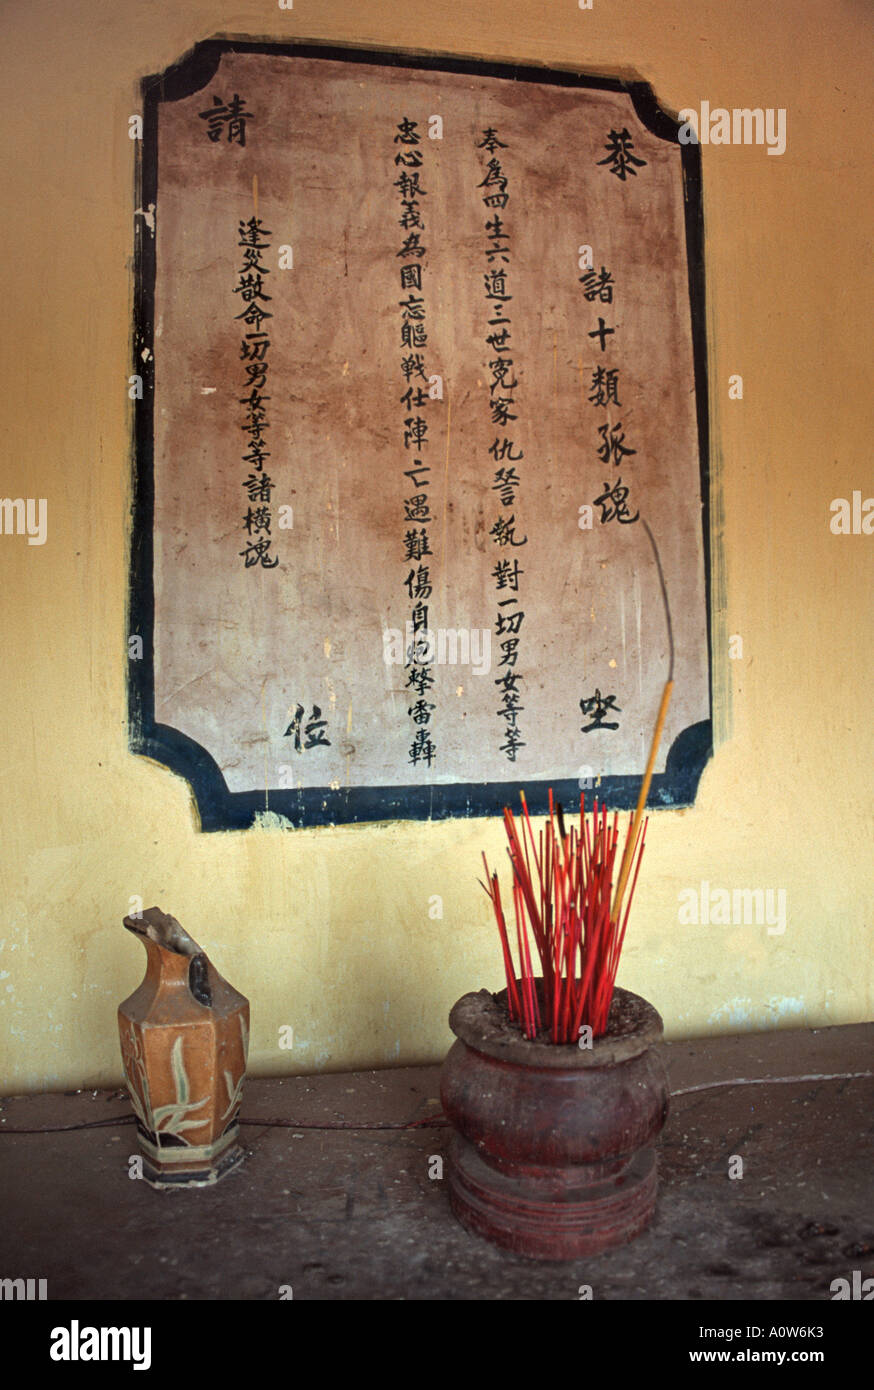 Incense sticks in a buddhist temple Saigon Ho Chi Minh city Vietnam - Stock Image